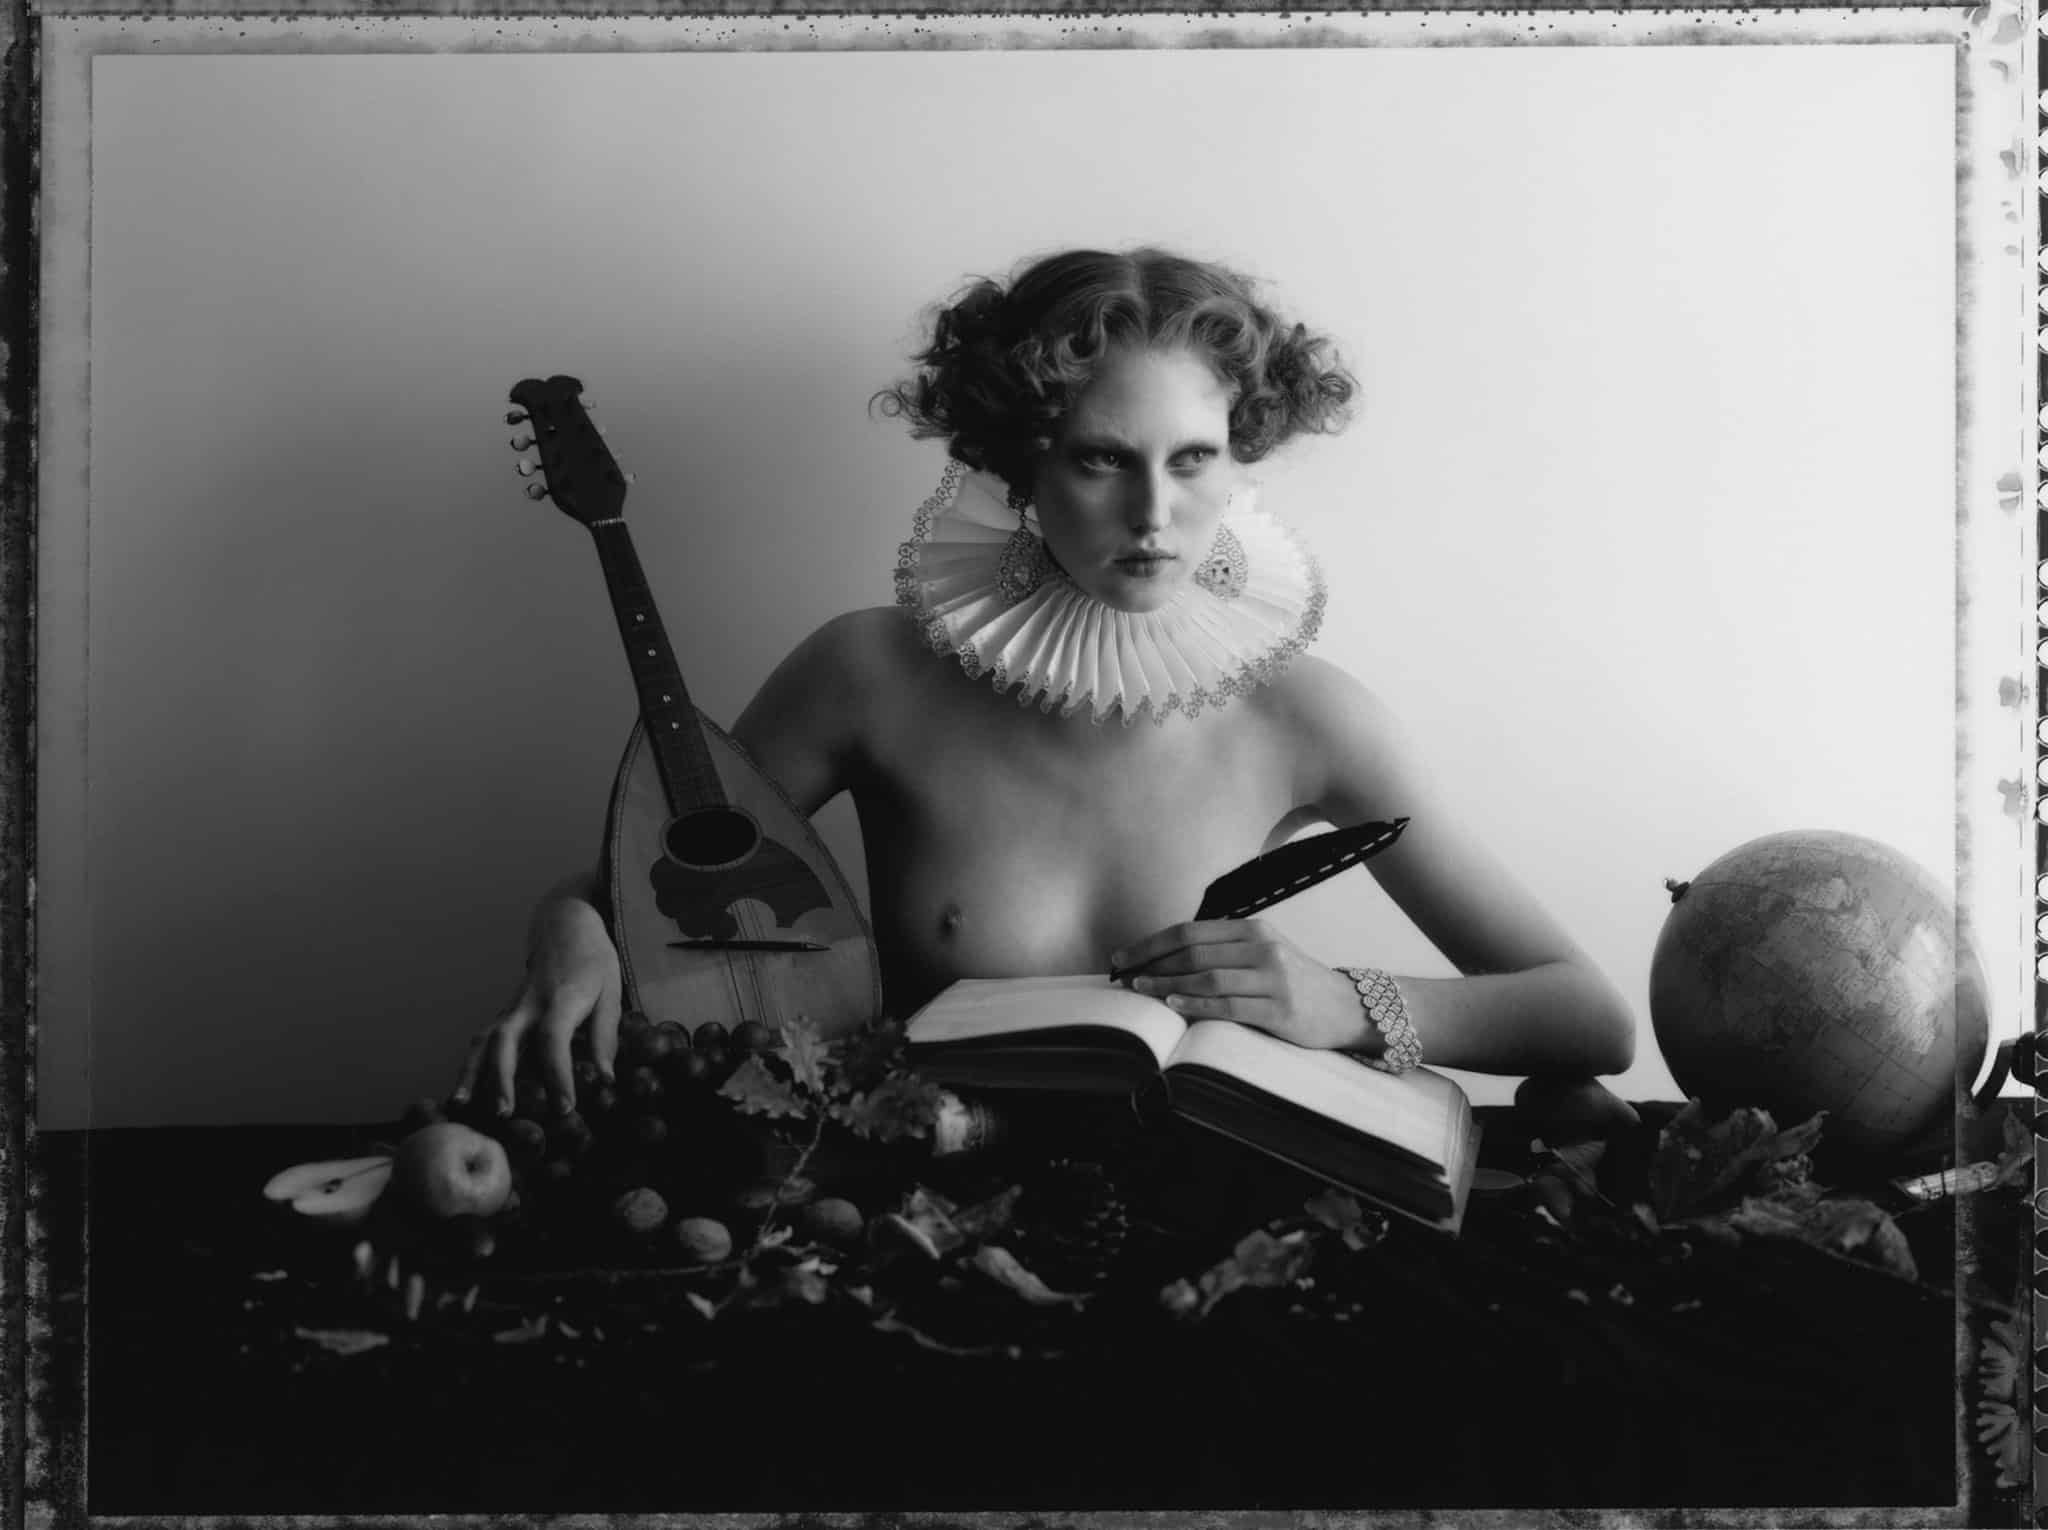 Fine art b/w photography of semi-nude fashion model wearing Buccellati jewellery, ear rings and bracelet, sitting on a table with various object like a mandoline, a globe and fruits. Influenced by english still life paintings.